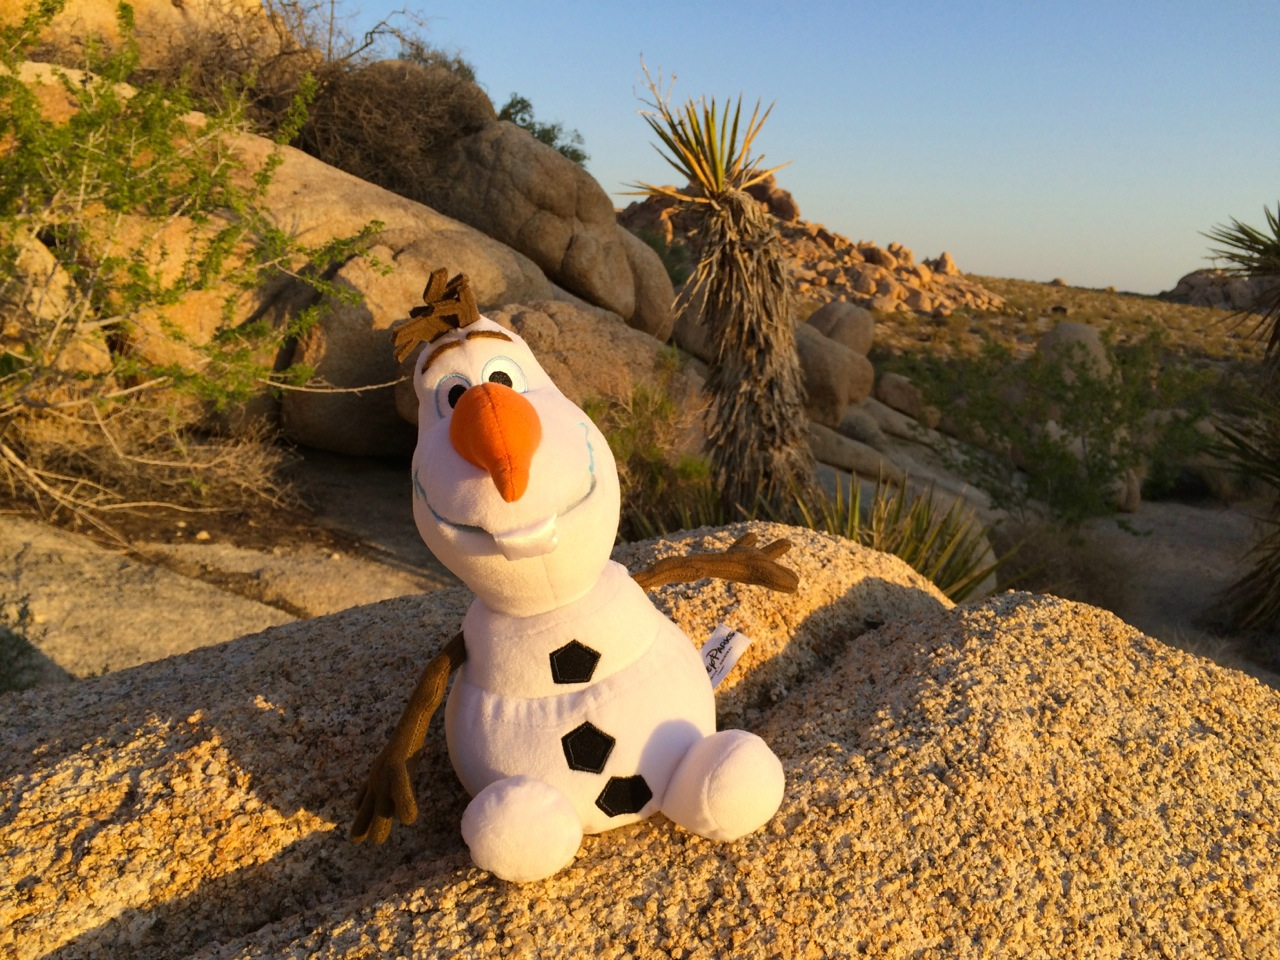 Olaf-#Disneyside-photo-by-yvonne-condes